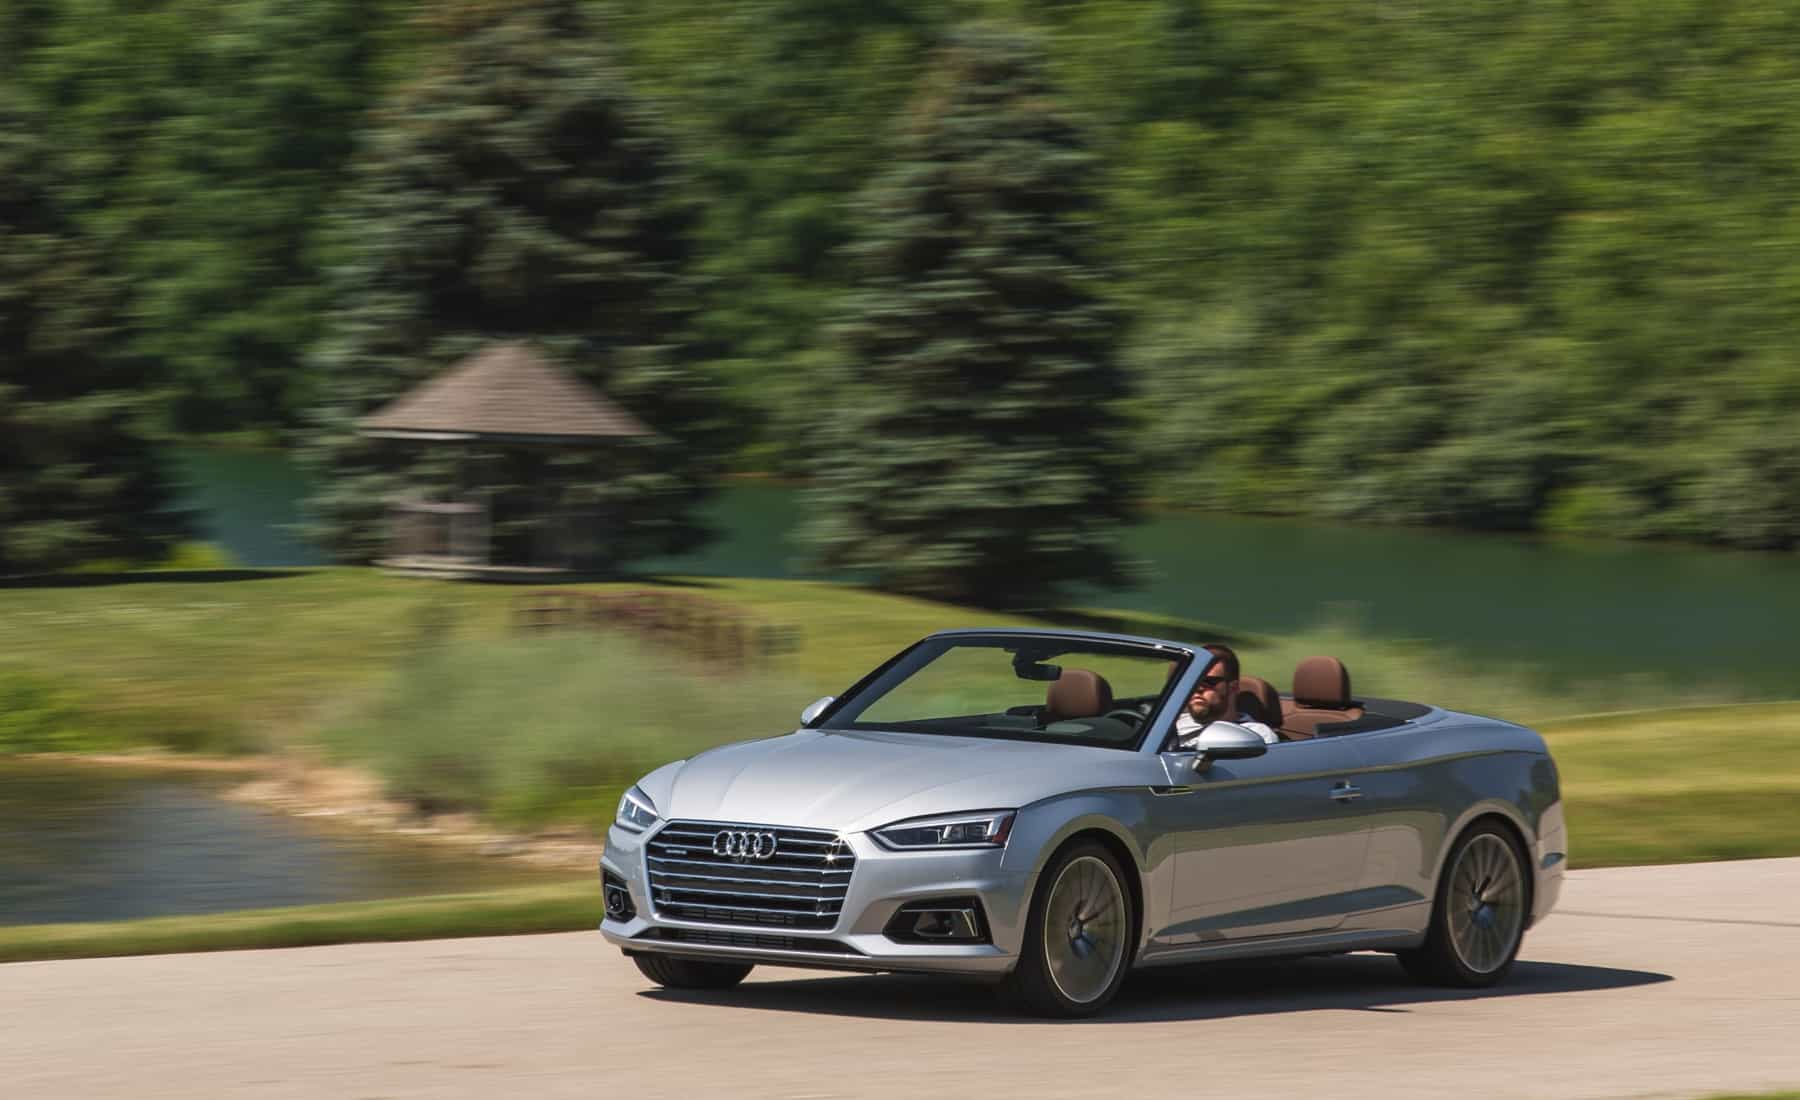 2018 Audi A5 Cabriolet Test Drive Roof Open Front And Side View (View 4 of 45)